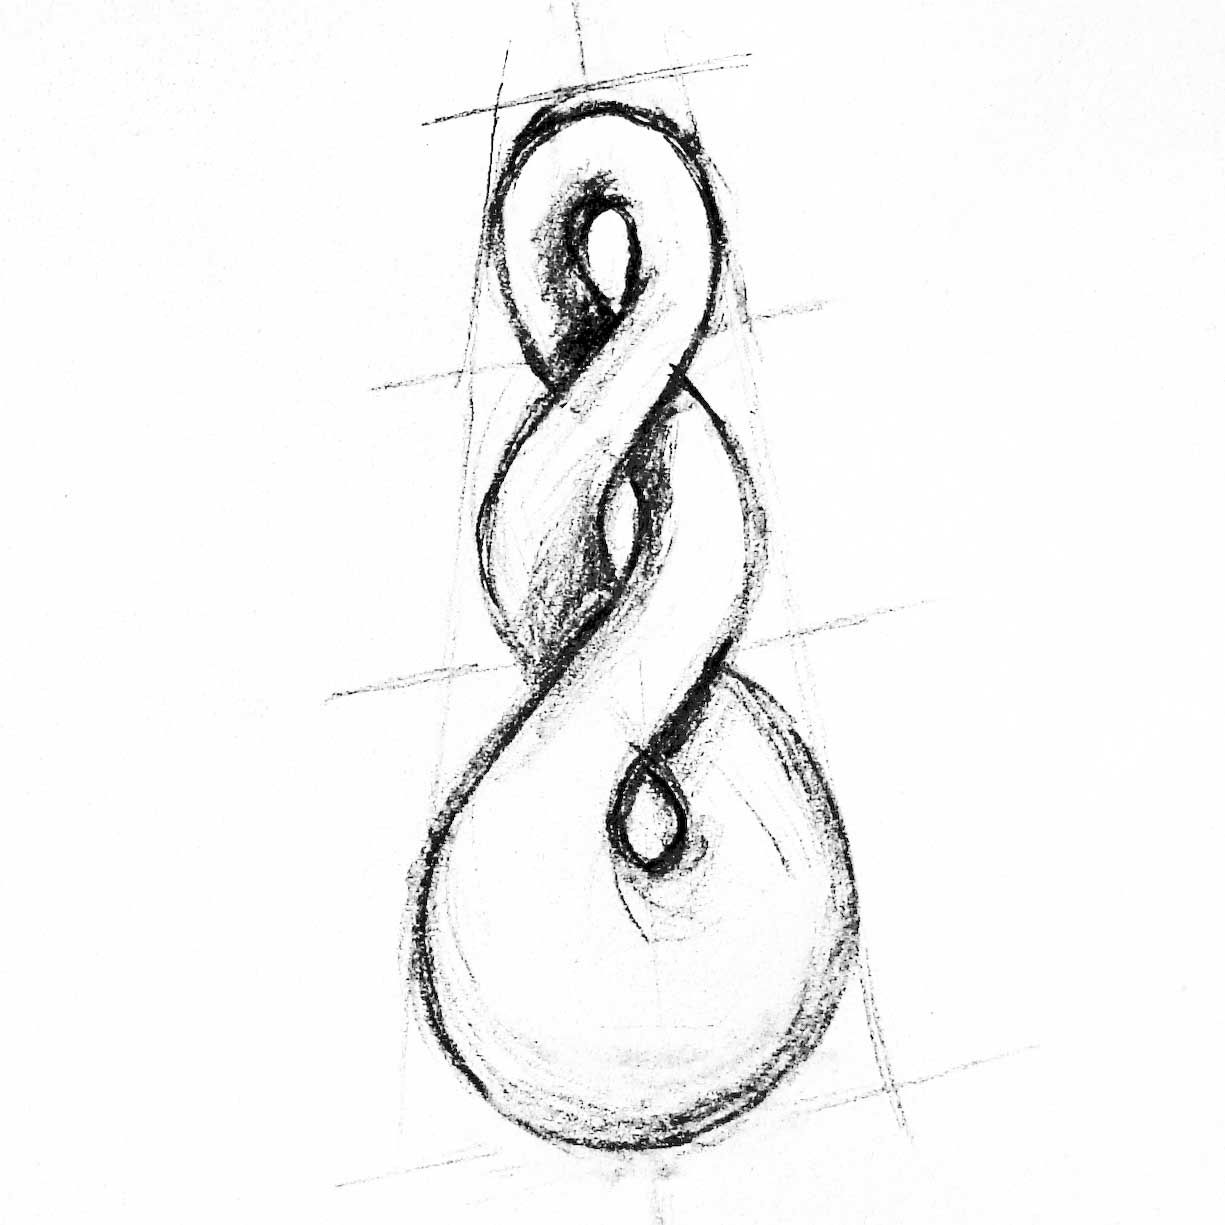 The Triple Twist Represents A Joining Or A Bonding Of Friends